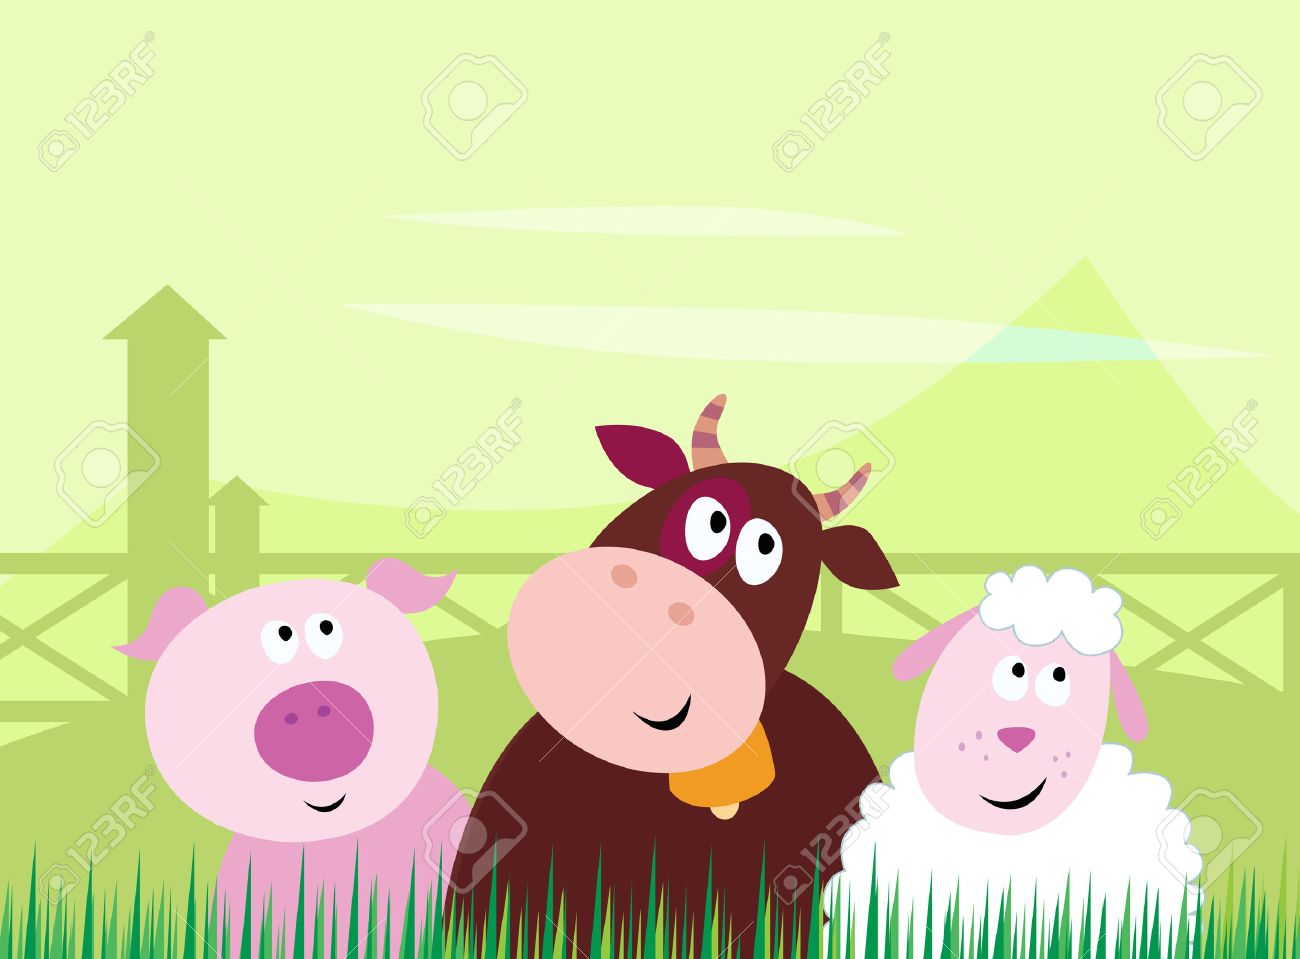 Farm animals - Pig, Cow and Sheep. Stock Vector - 7373744